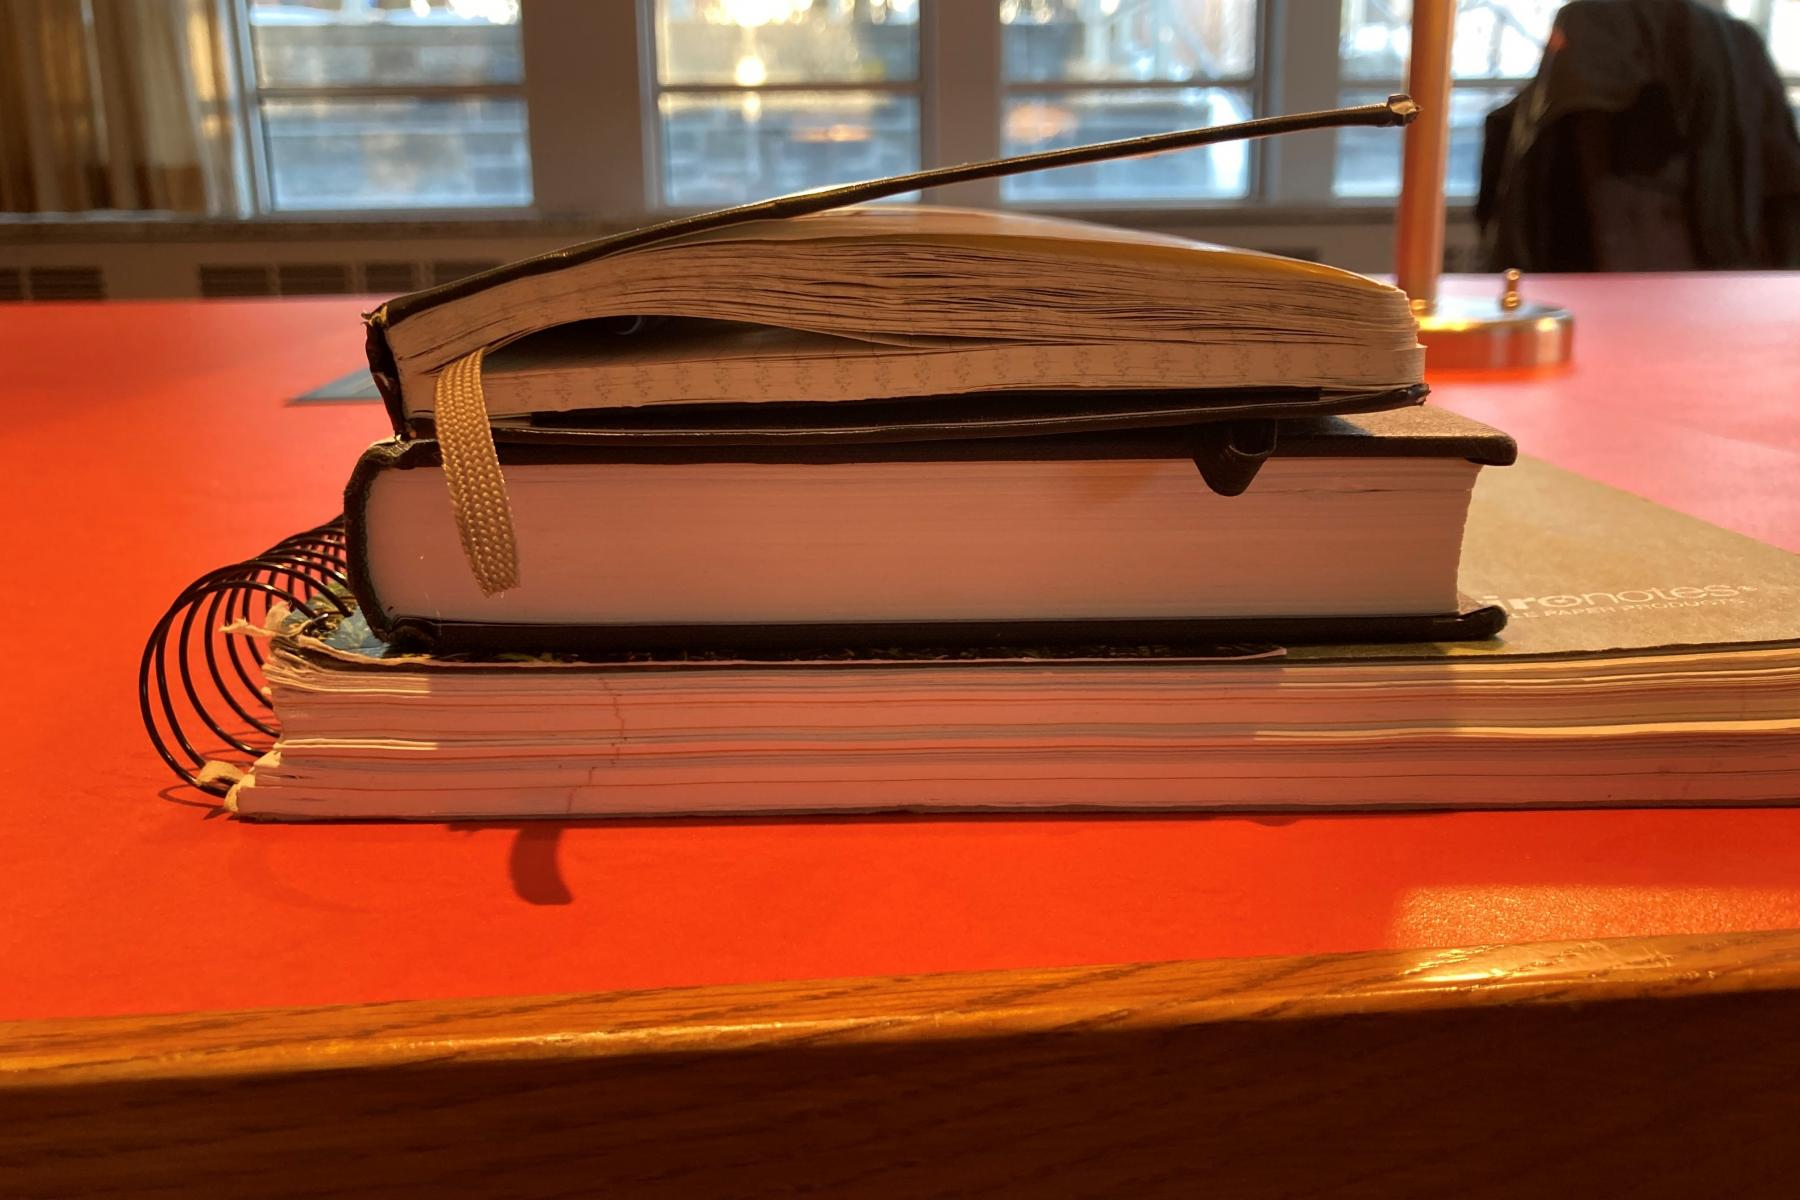 A stack of a large spiral notebook, a black hardcover textbook and a black moleskin notebook on an orange desk at Firestone. In the background, large windows can be seen.